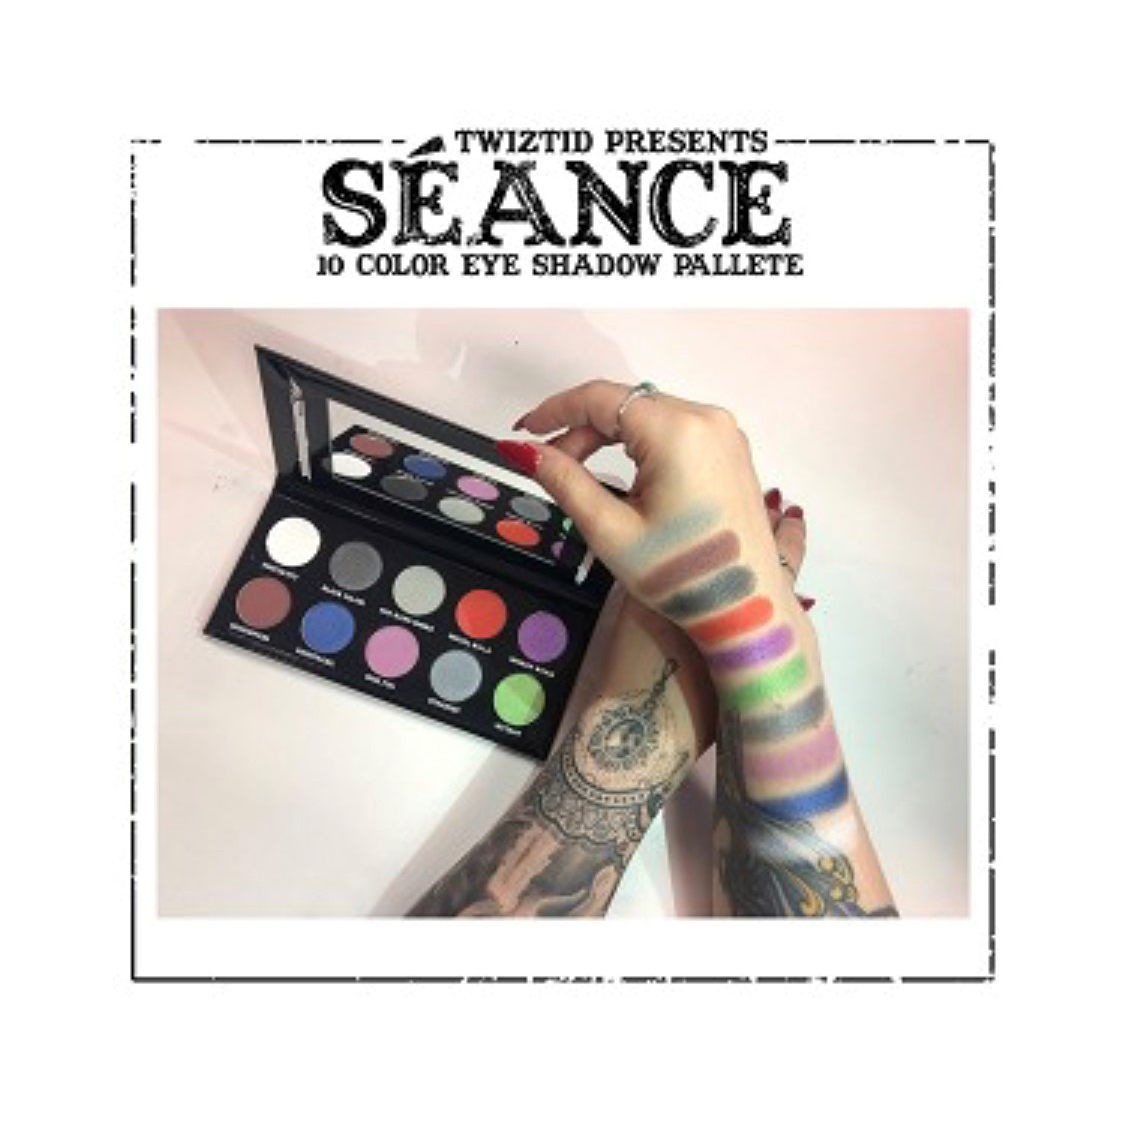 Seance by Twiztid Cosmetics 10 Color Eye Shadow Palette